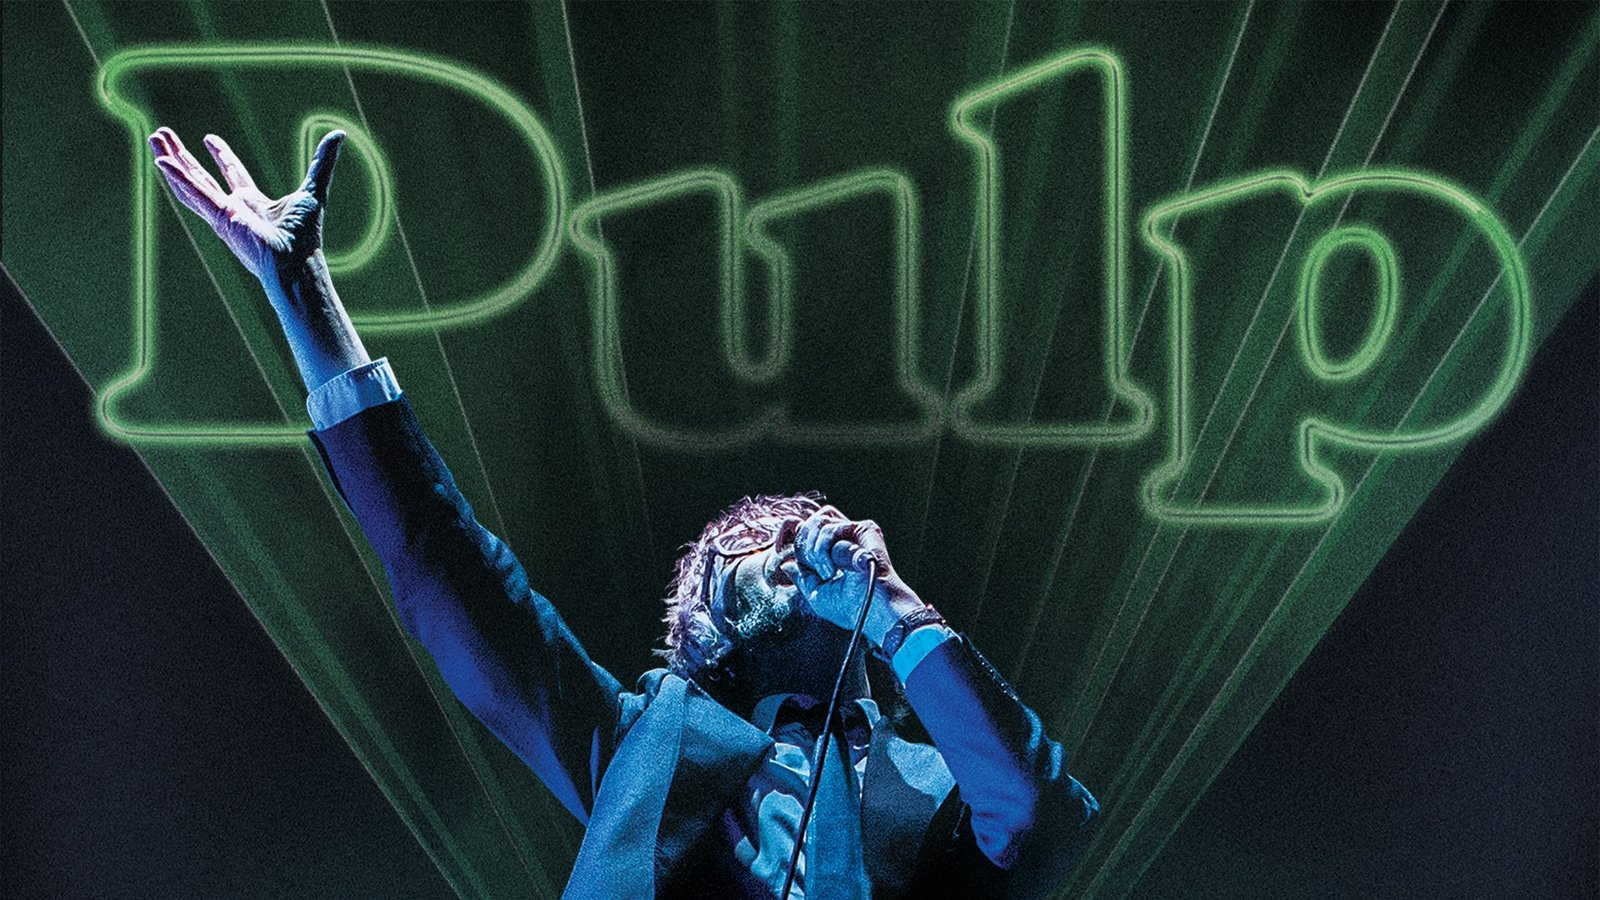 Pulp: A Film About Life, Death and Supermarkets - A Britpop Band Returns to Sheffield for Their Final Show